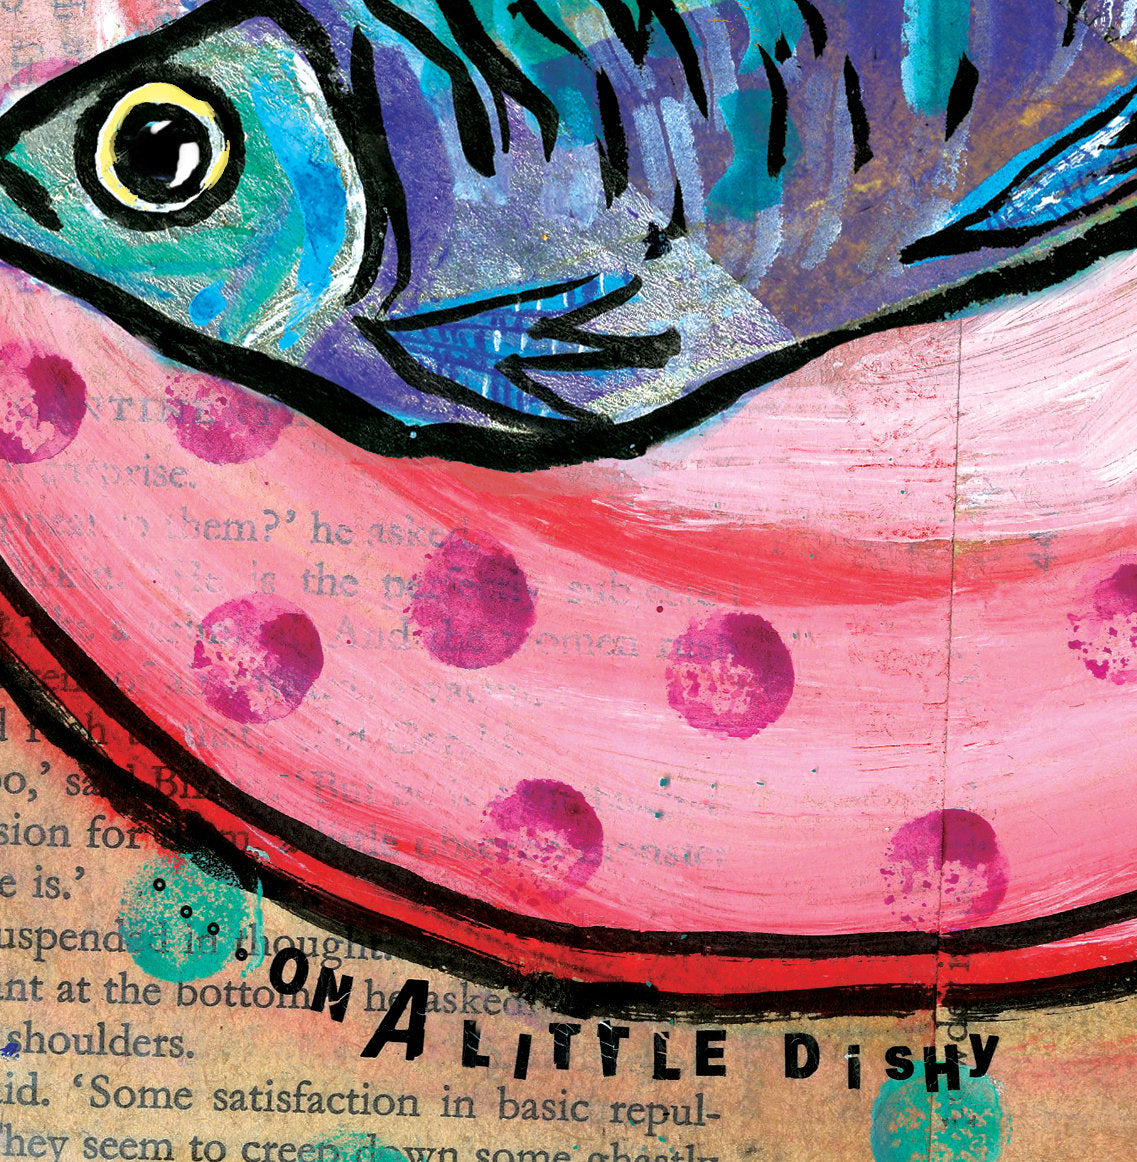 'On a little Dishy' Greetings Card